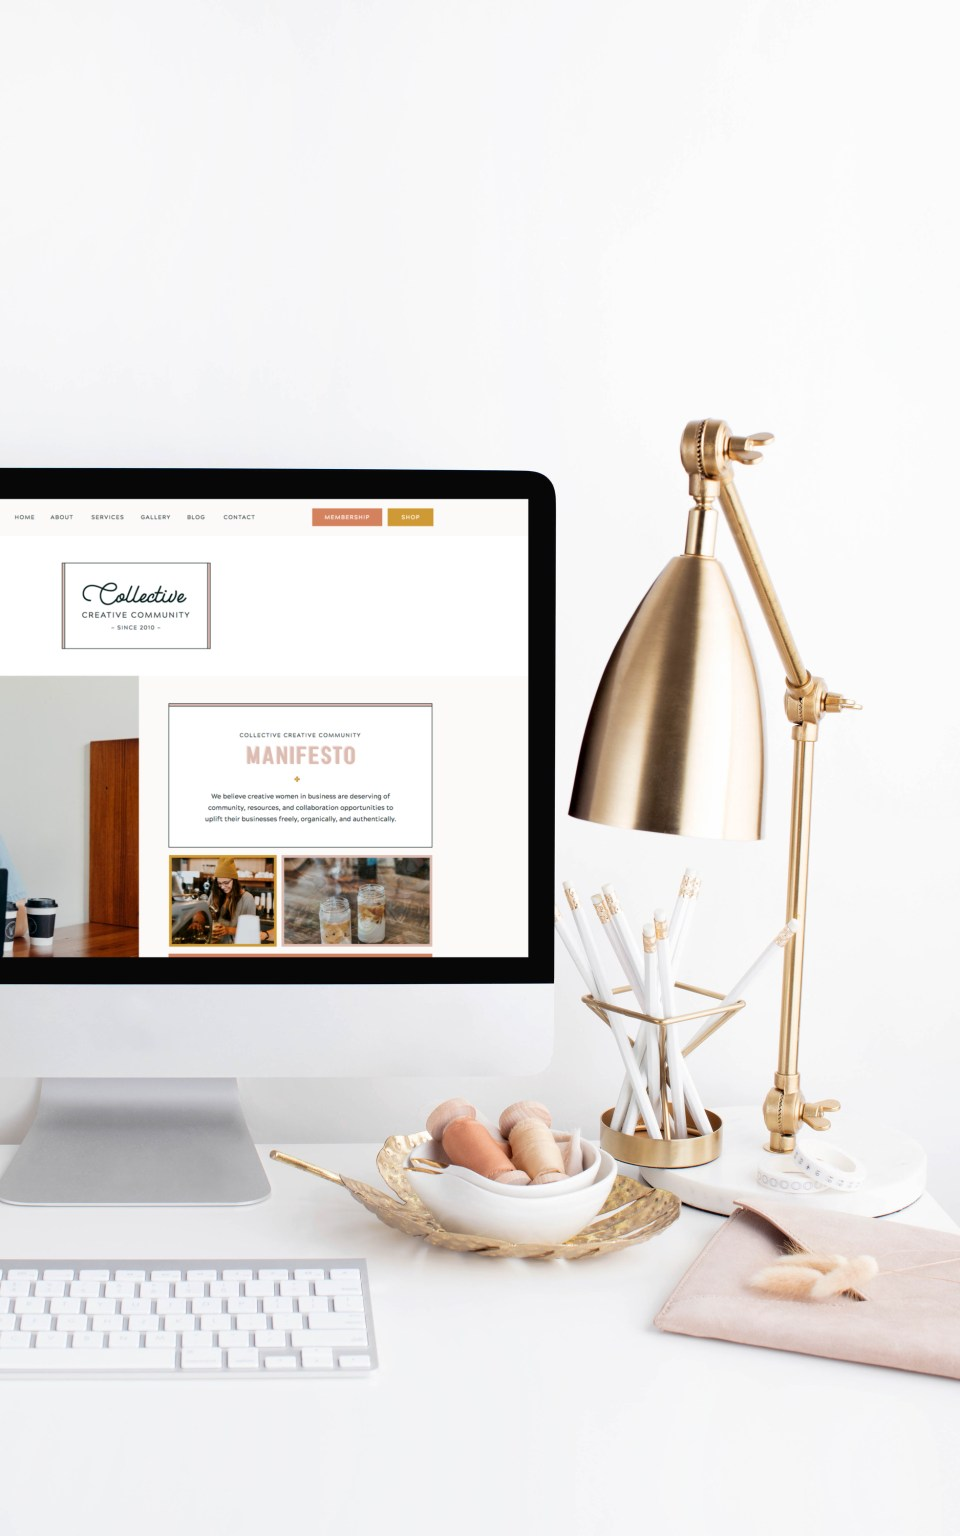 Collective - With Grace and Gold - Showit Template, Showit Templates, Showit Theme, Showit Themes, Showit Design, Showit Designs, Showit Designer, Showit Designers - Photo